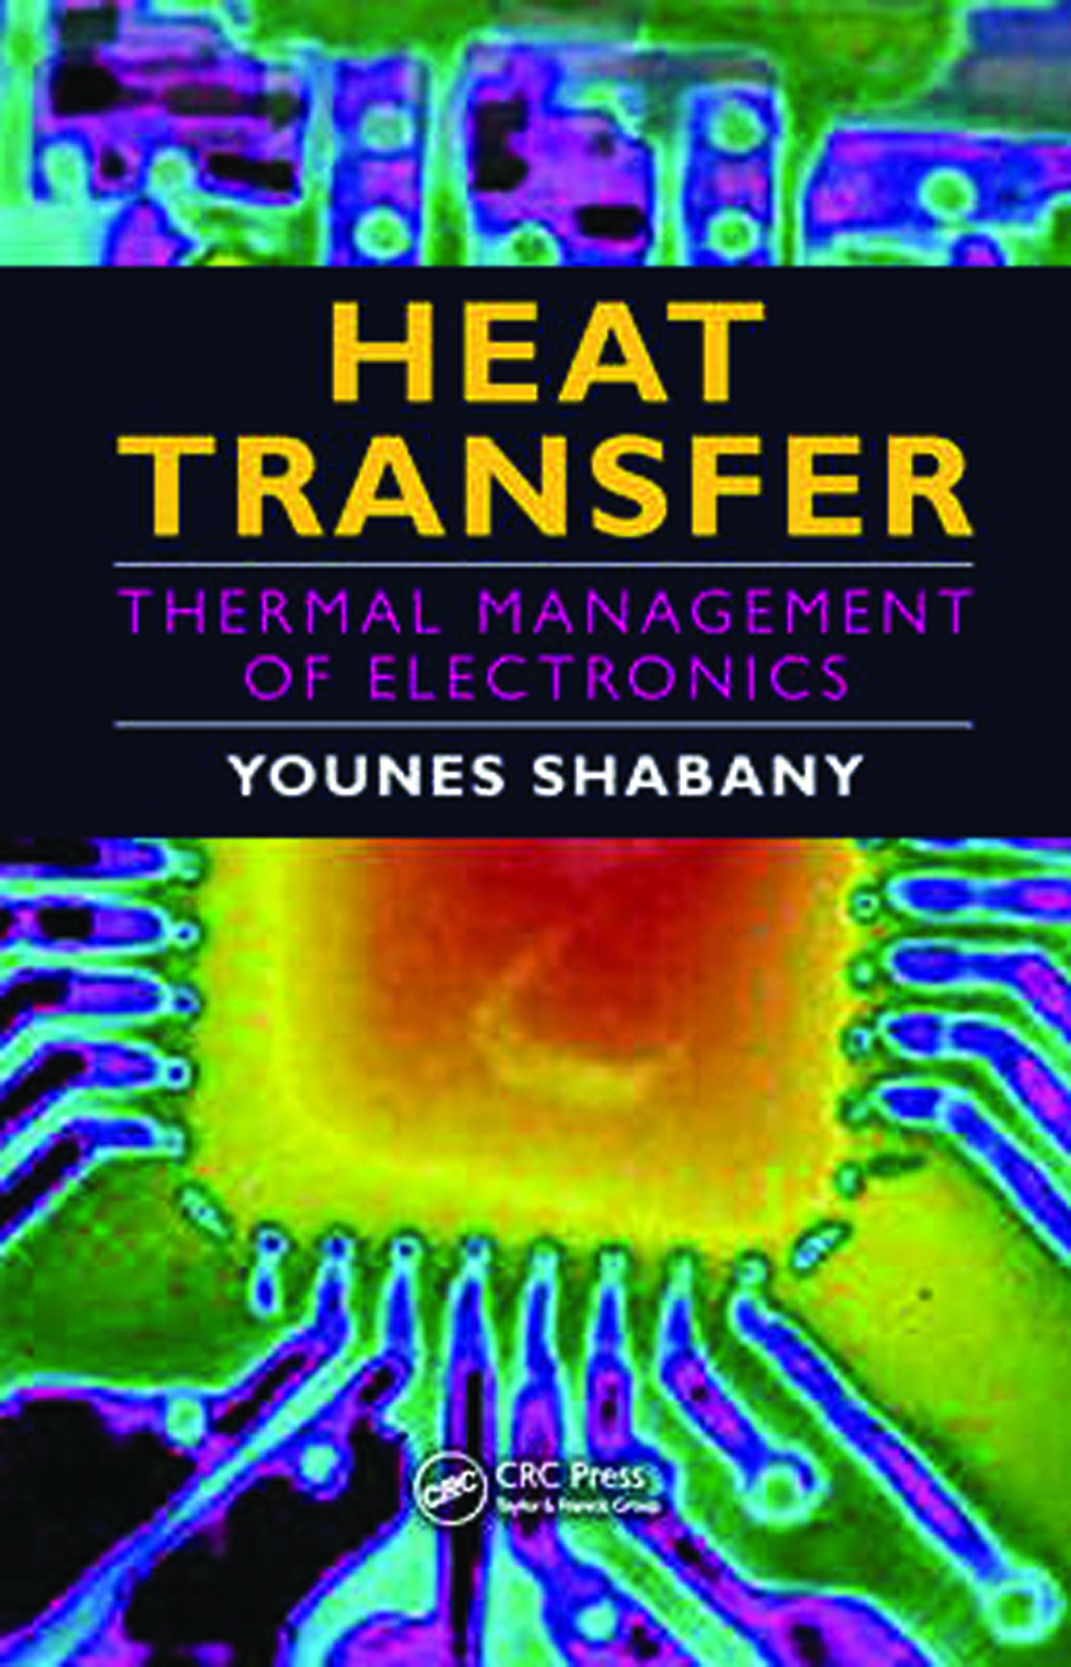 Textbook Covers Basic Heat Transfer Theory Practical Guidelines